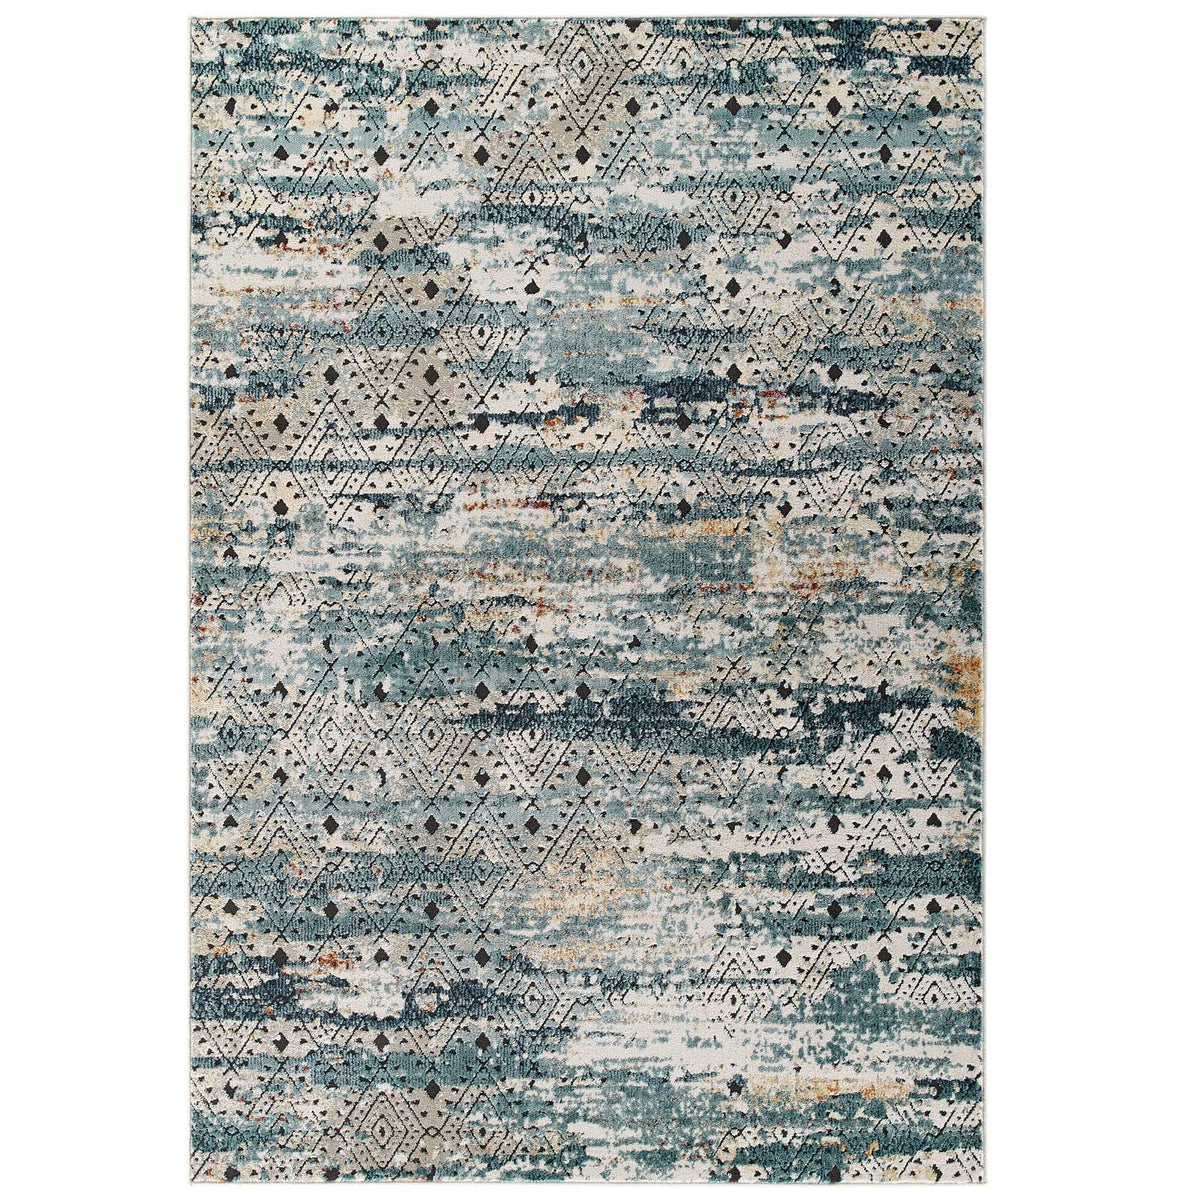 Chipol 8x10 Area Rug Multicolor